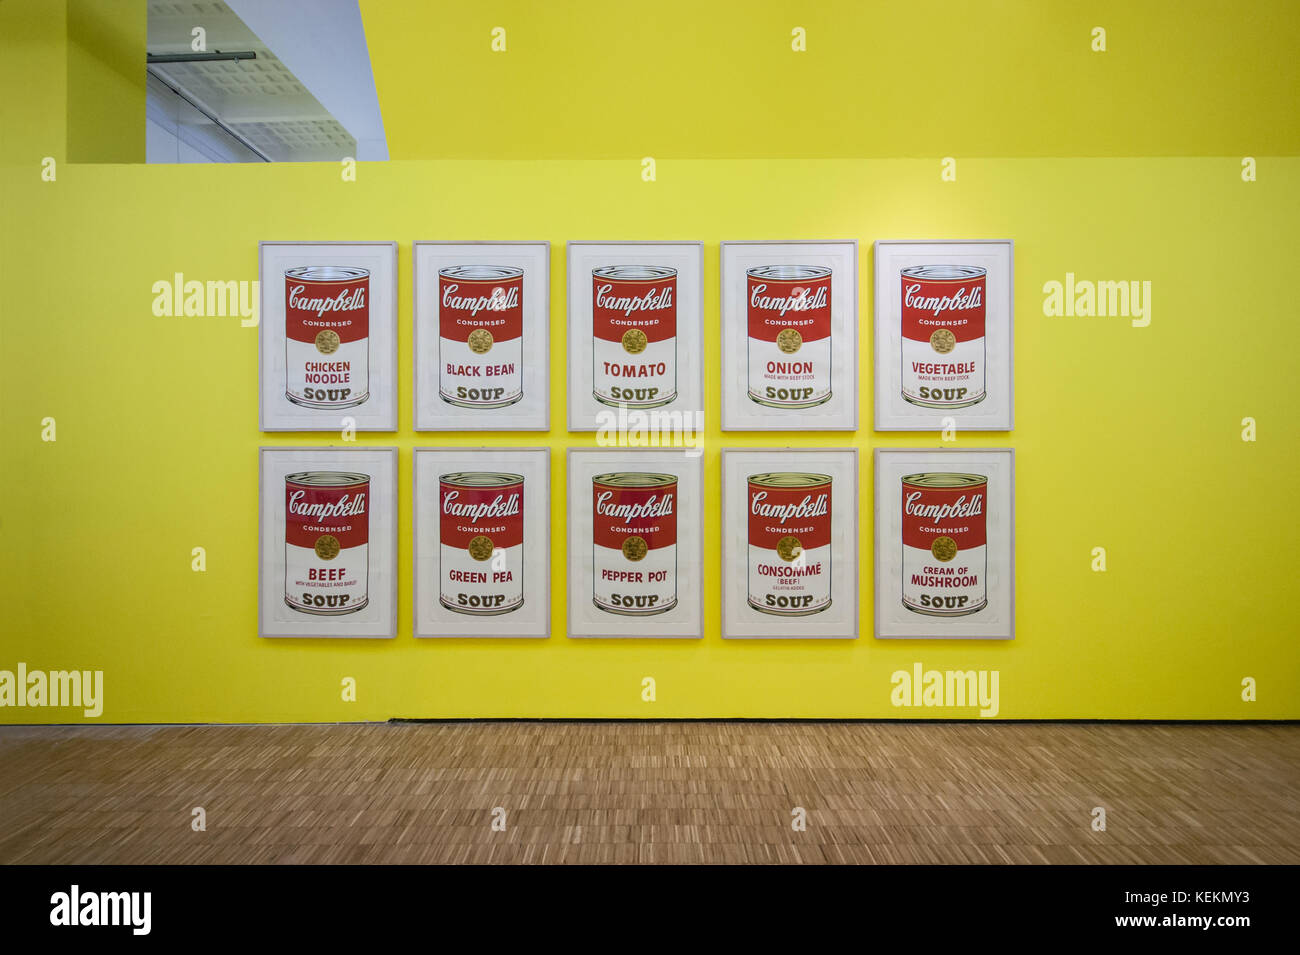 Andy Warhol Paintings Stock Photos & Andy Warhol Paintings Stock ...